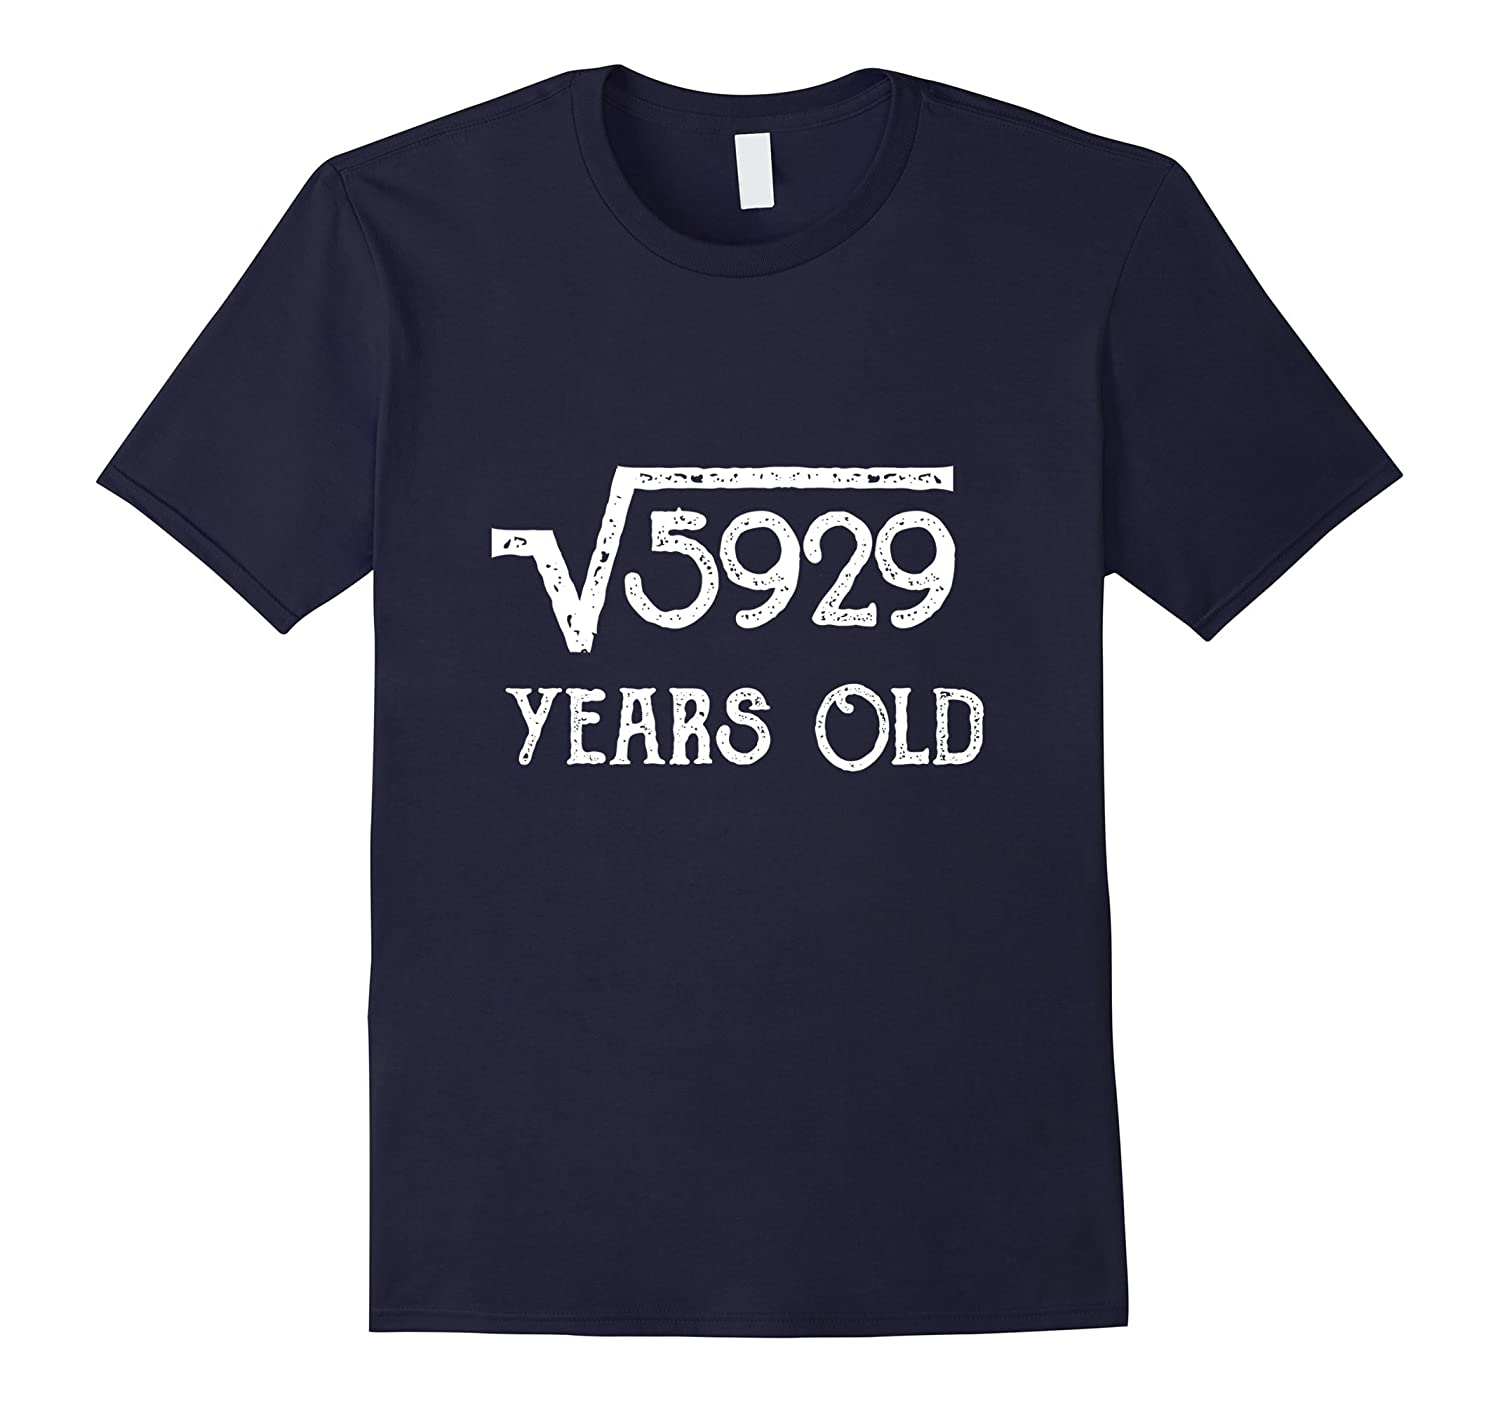 Funny 77th Birthday Shirt Square Root of 5929 for 77 yrs old-Vaci